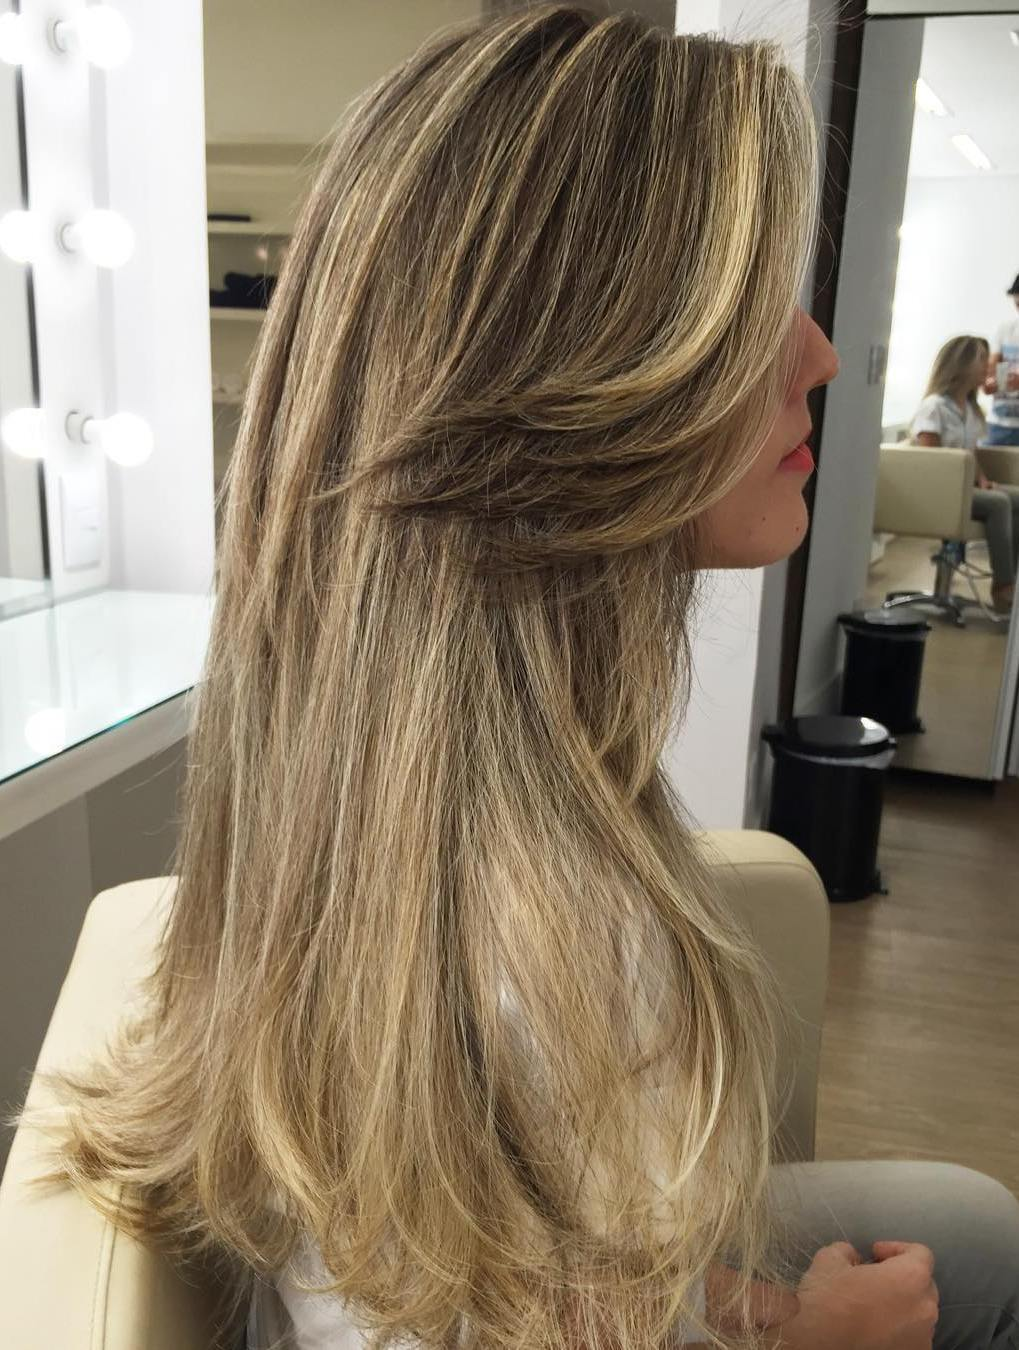 14 long bronde hairstyle with side bangs